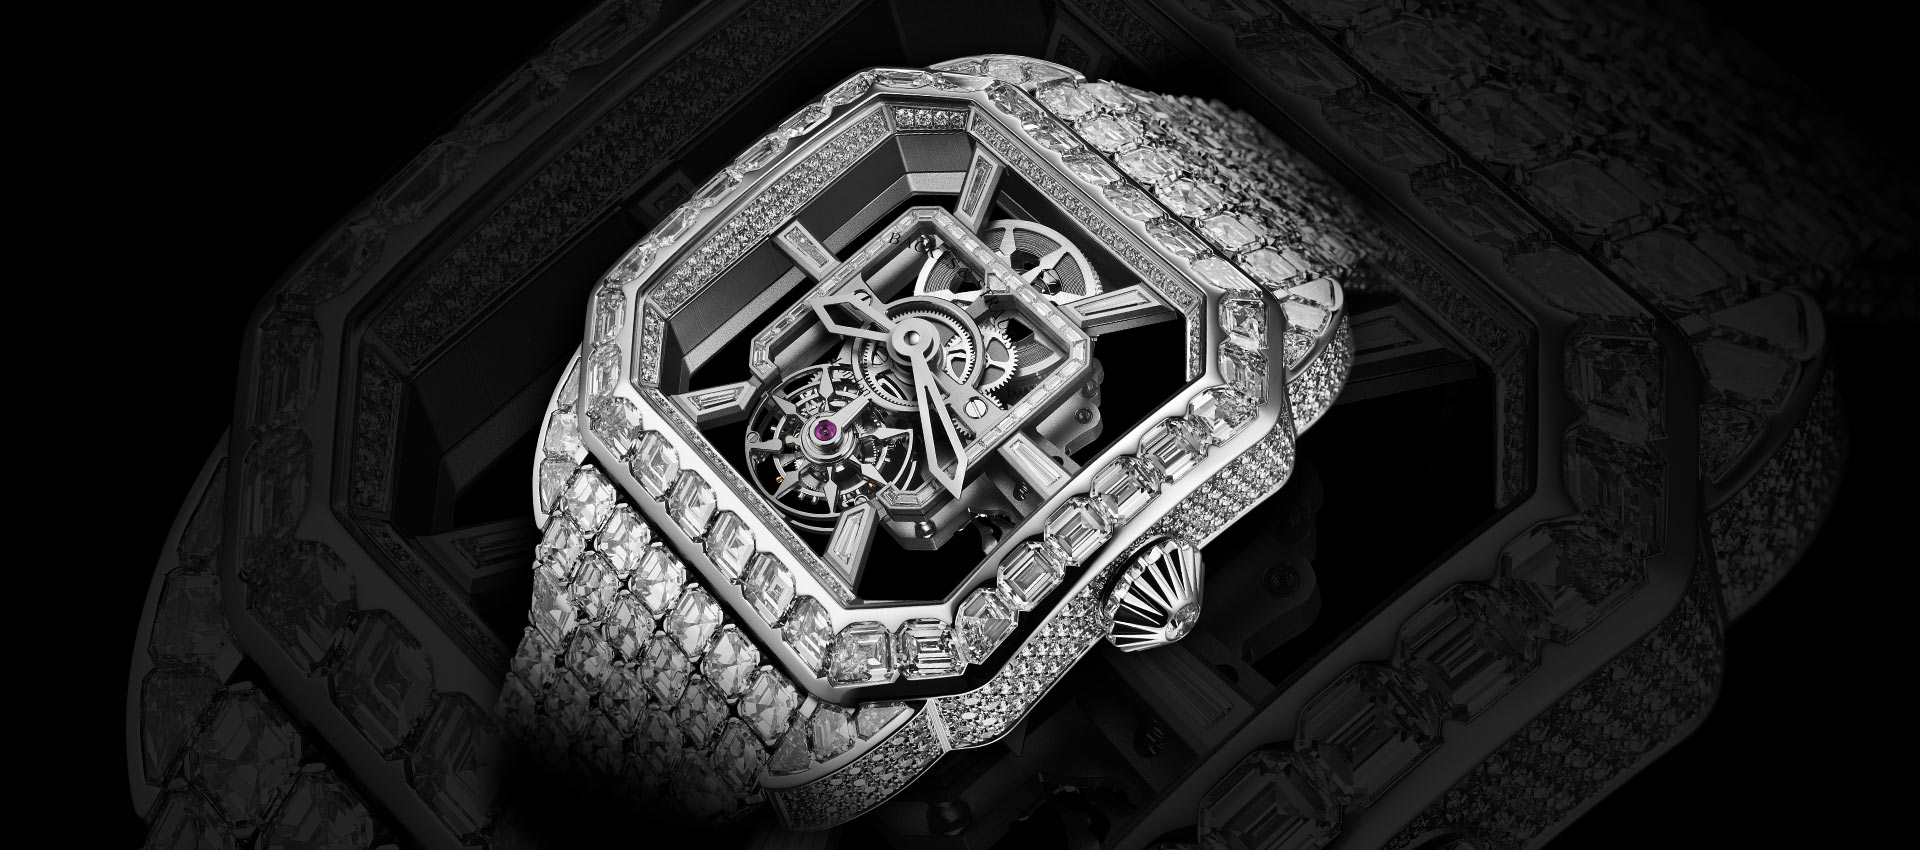 Royal Berkeley Emperor Tourbillon 45 diamond encrusted watch